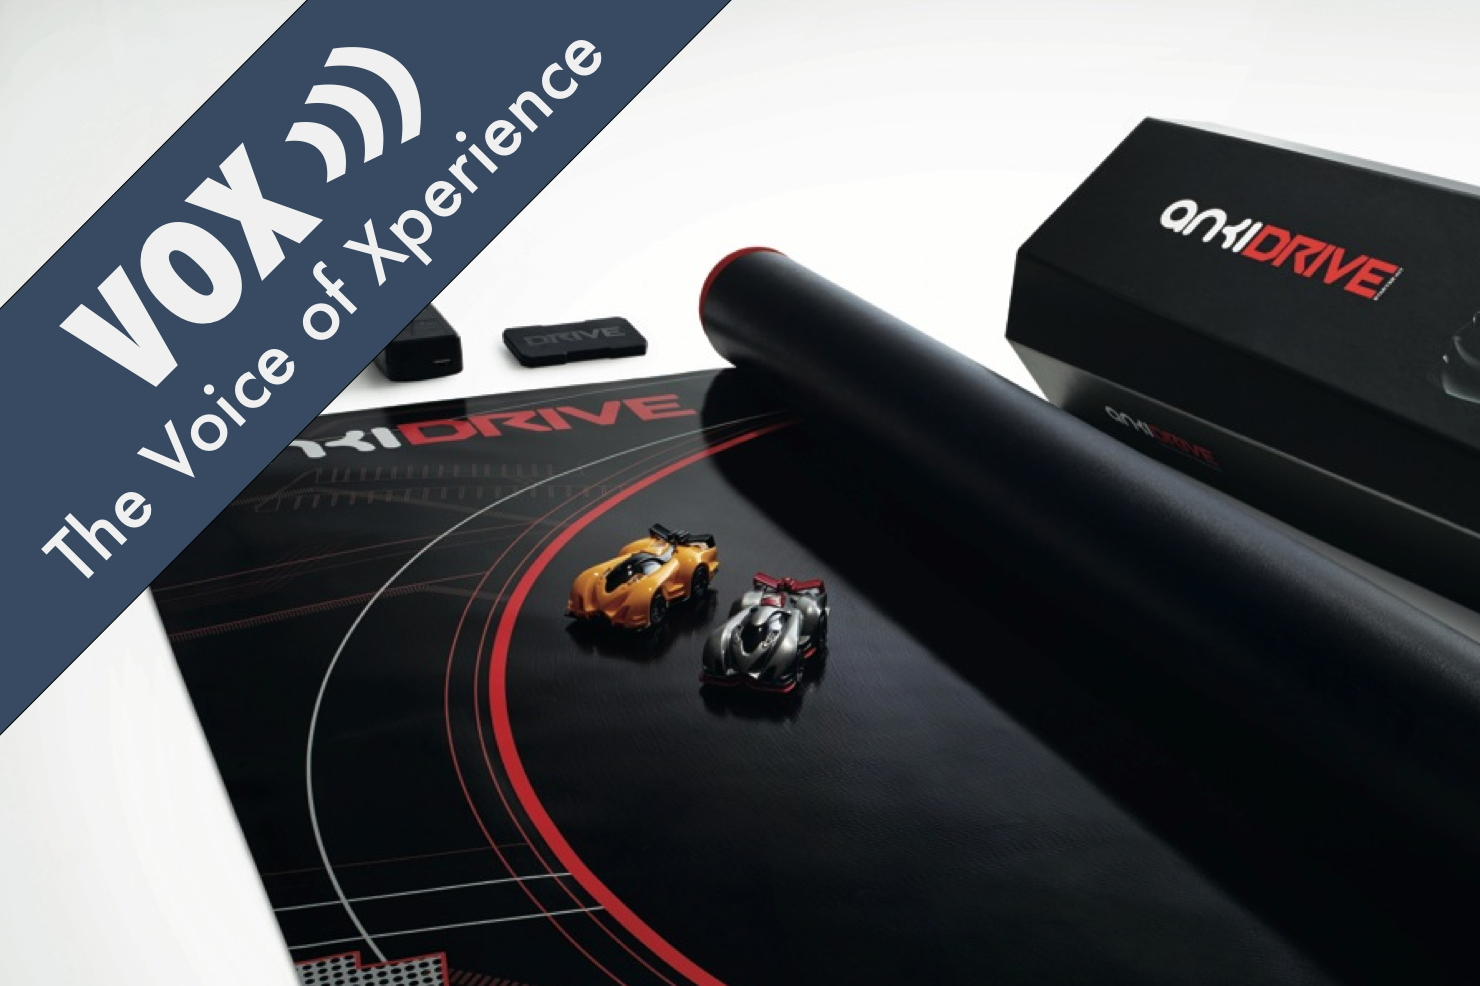 The Hottest High-Tech Toy of 2013: Anki's iPhone-Driven Robot Cars. A VOX column by Wade Roush